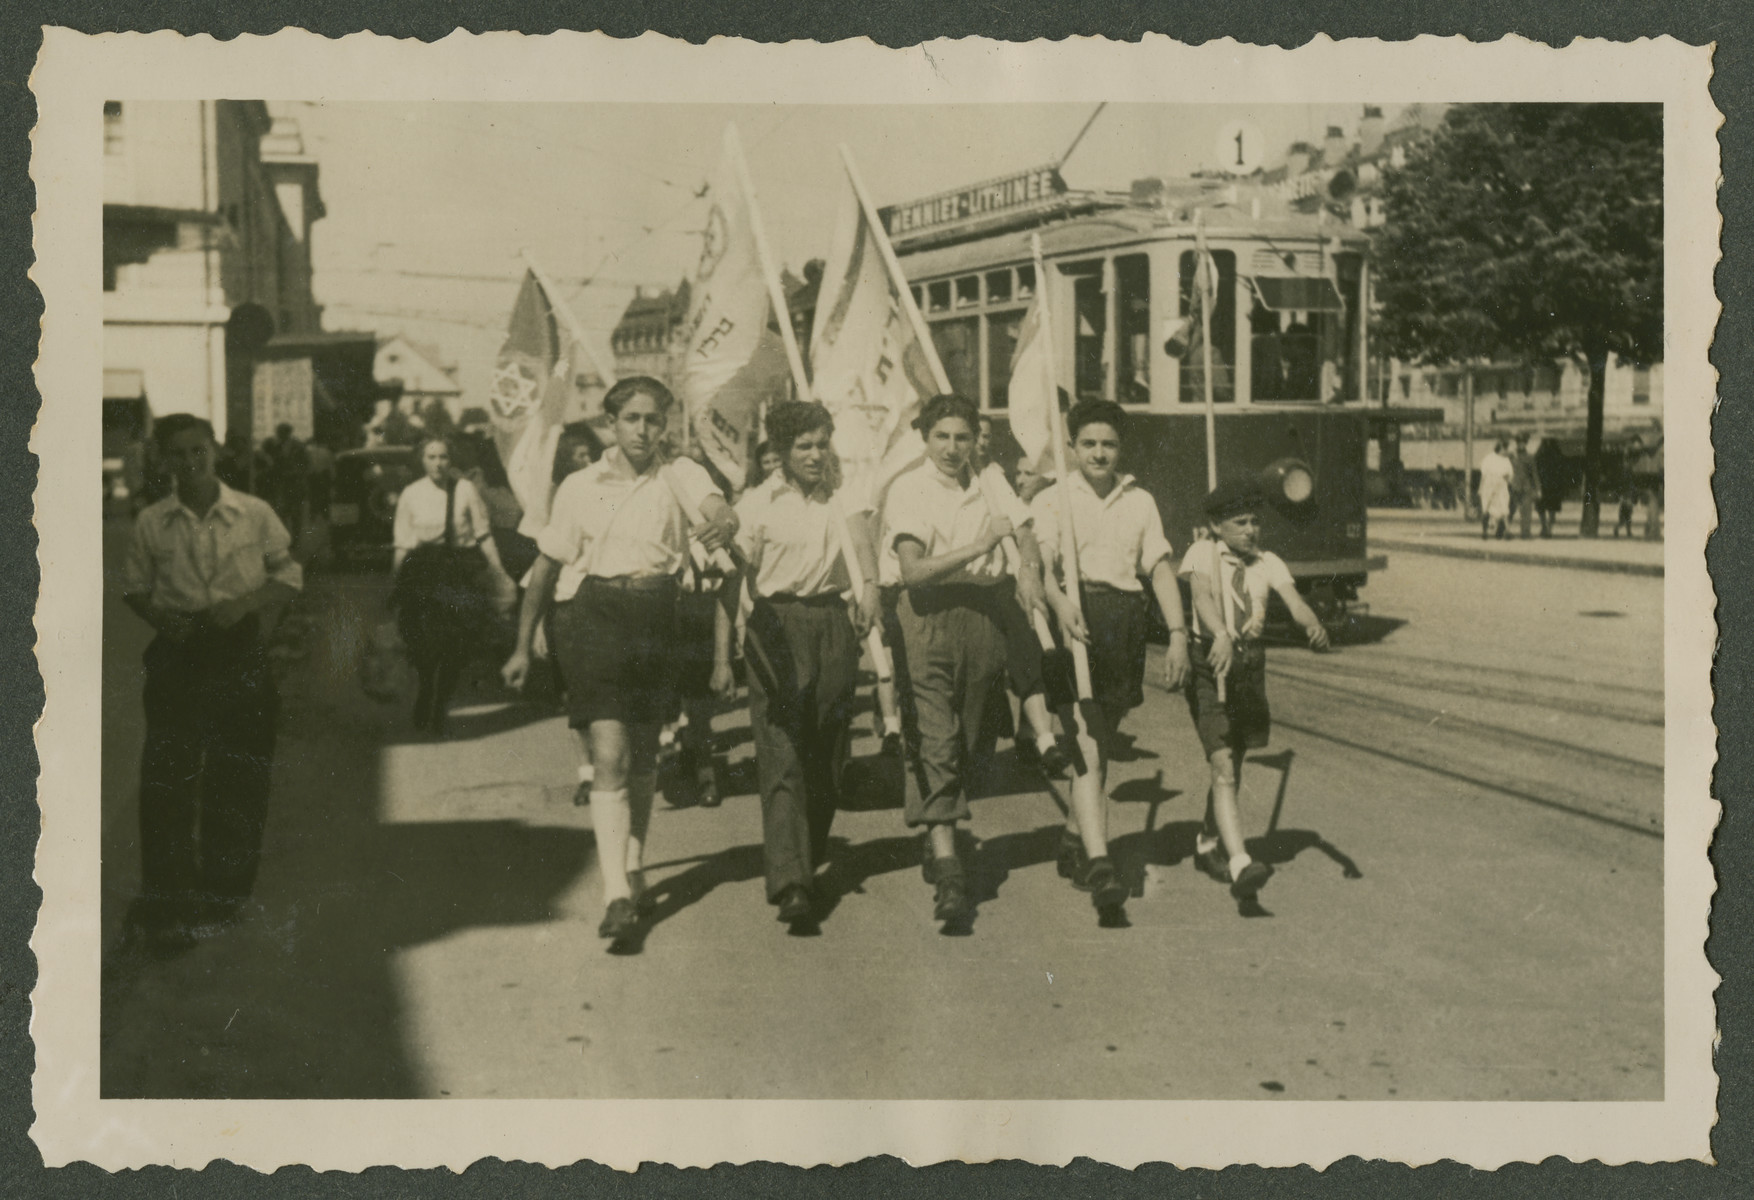 Zionist youth carrying flags parade through a street in Switzerland.